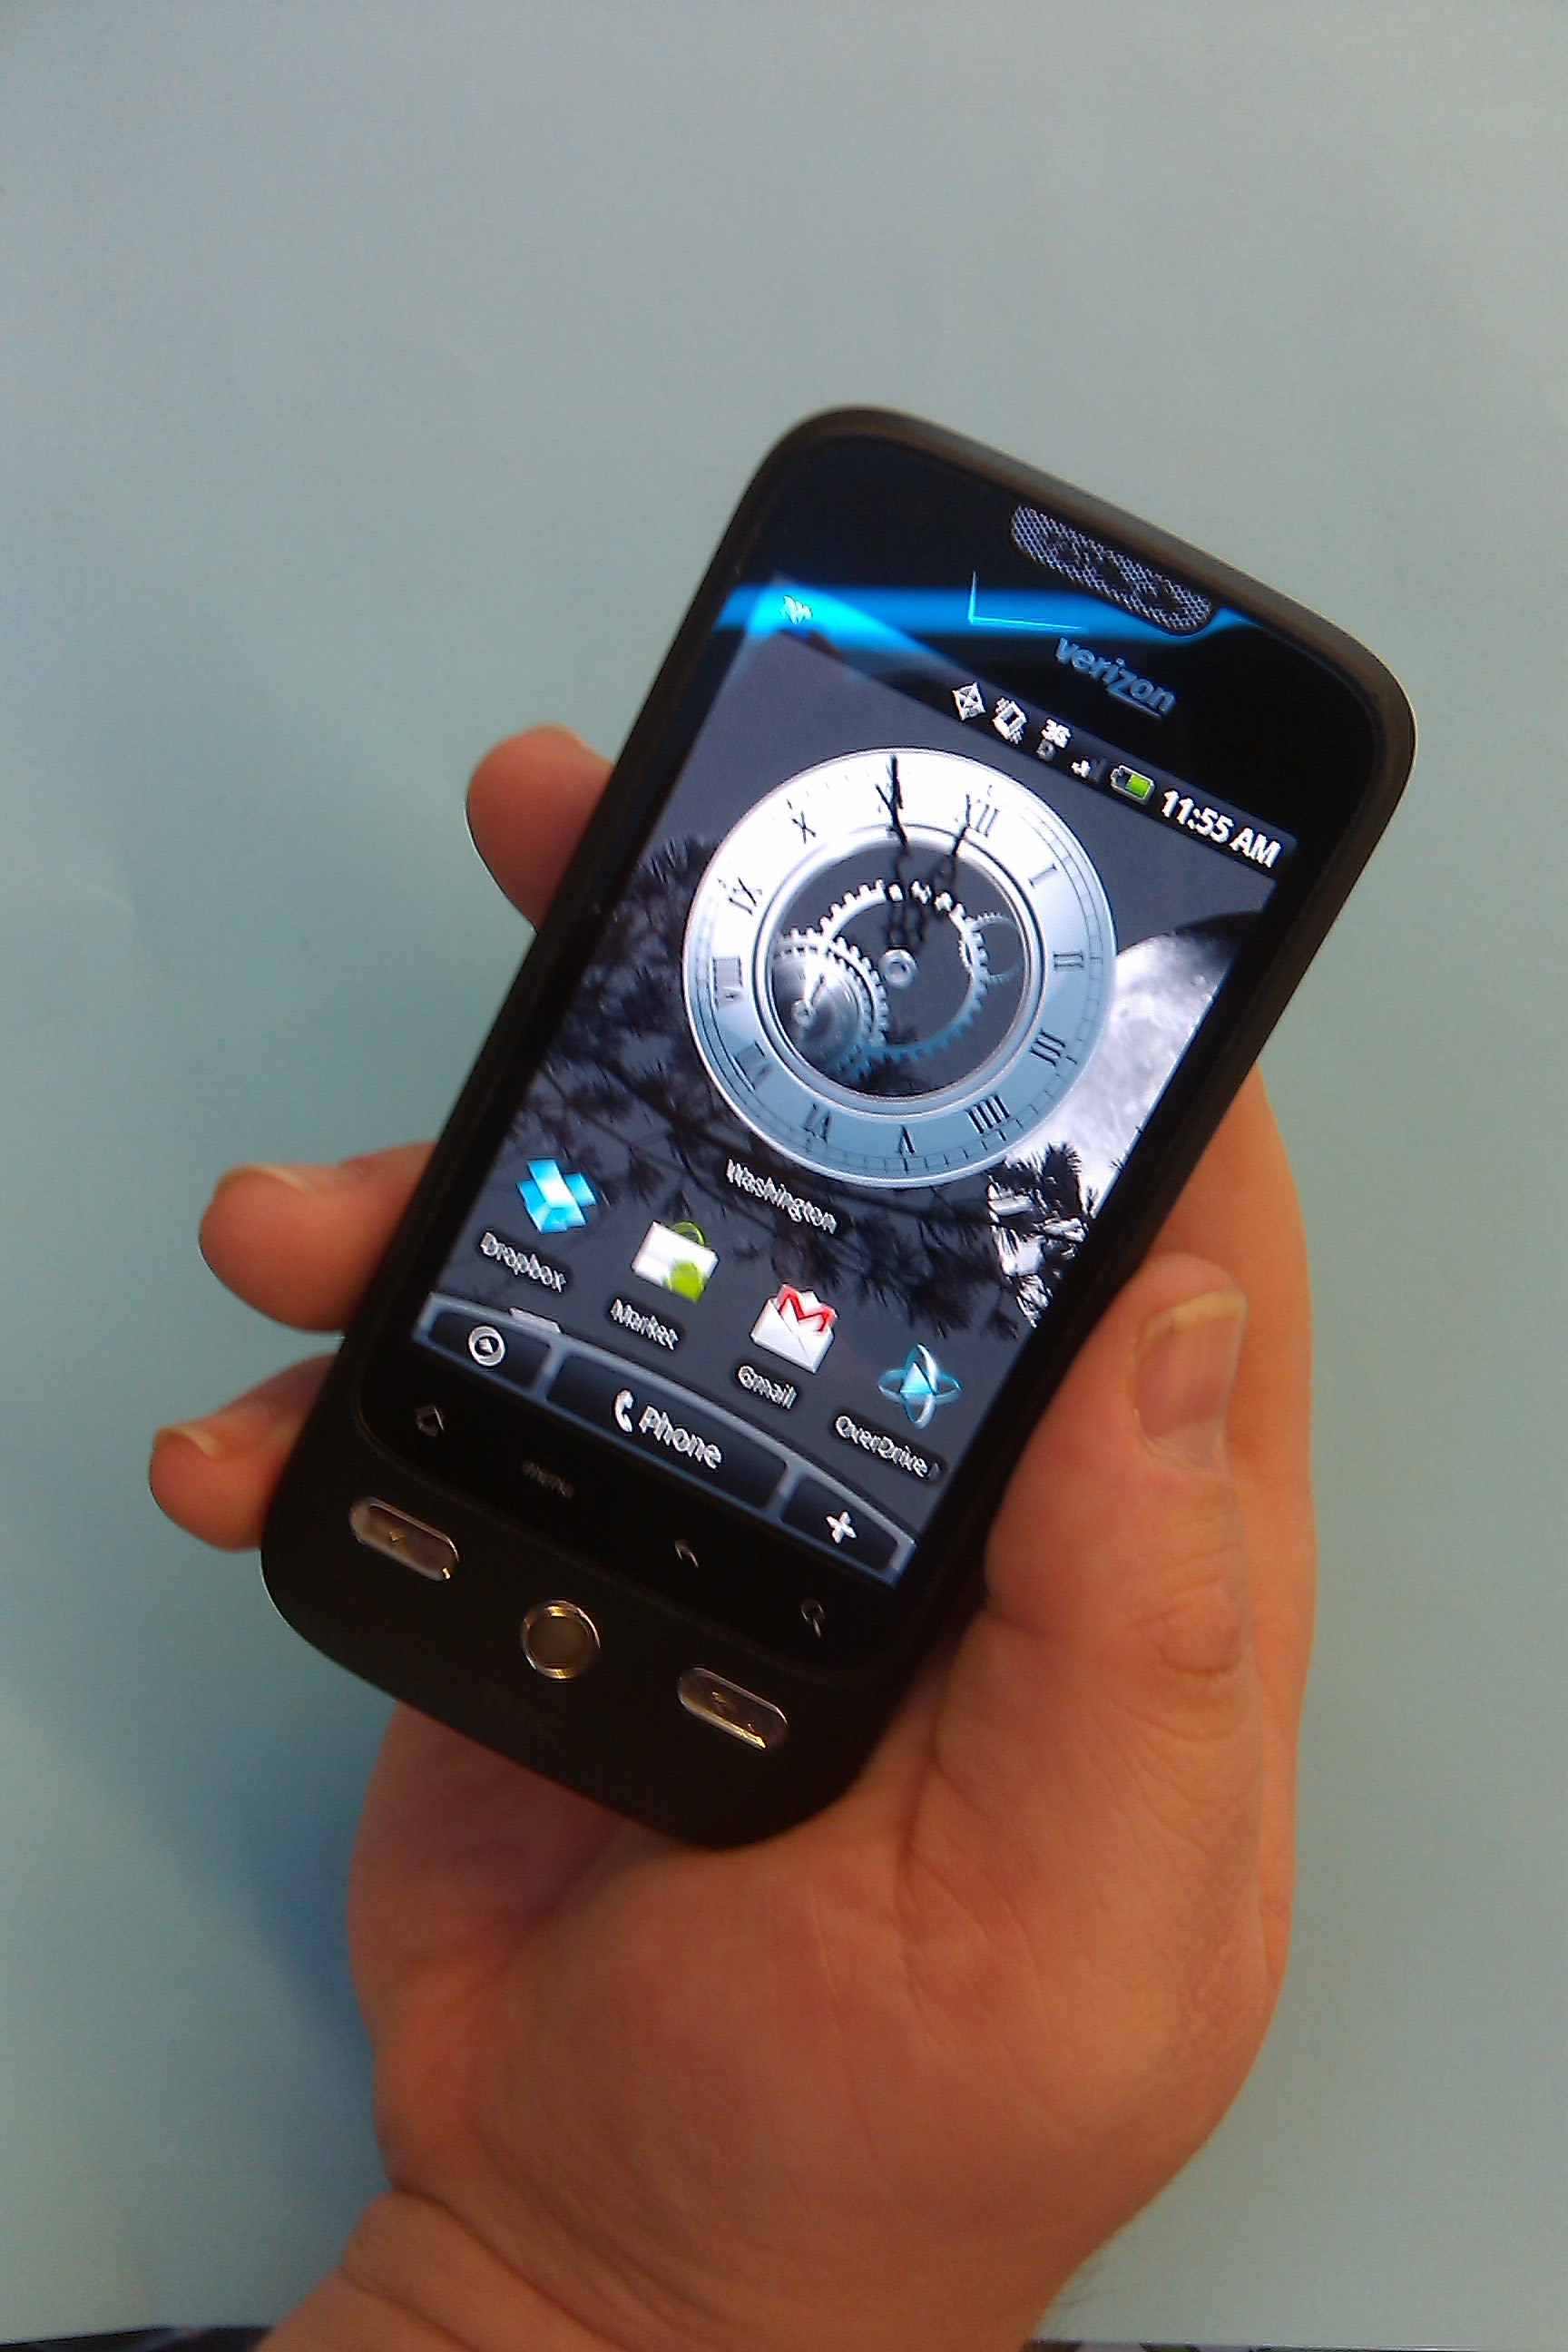 Image of android phone